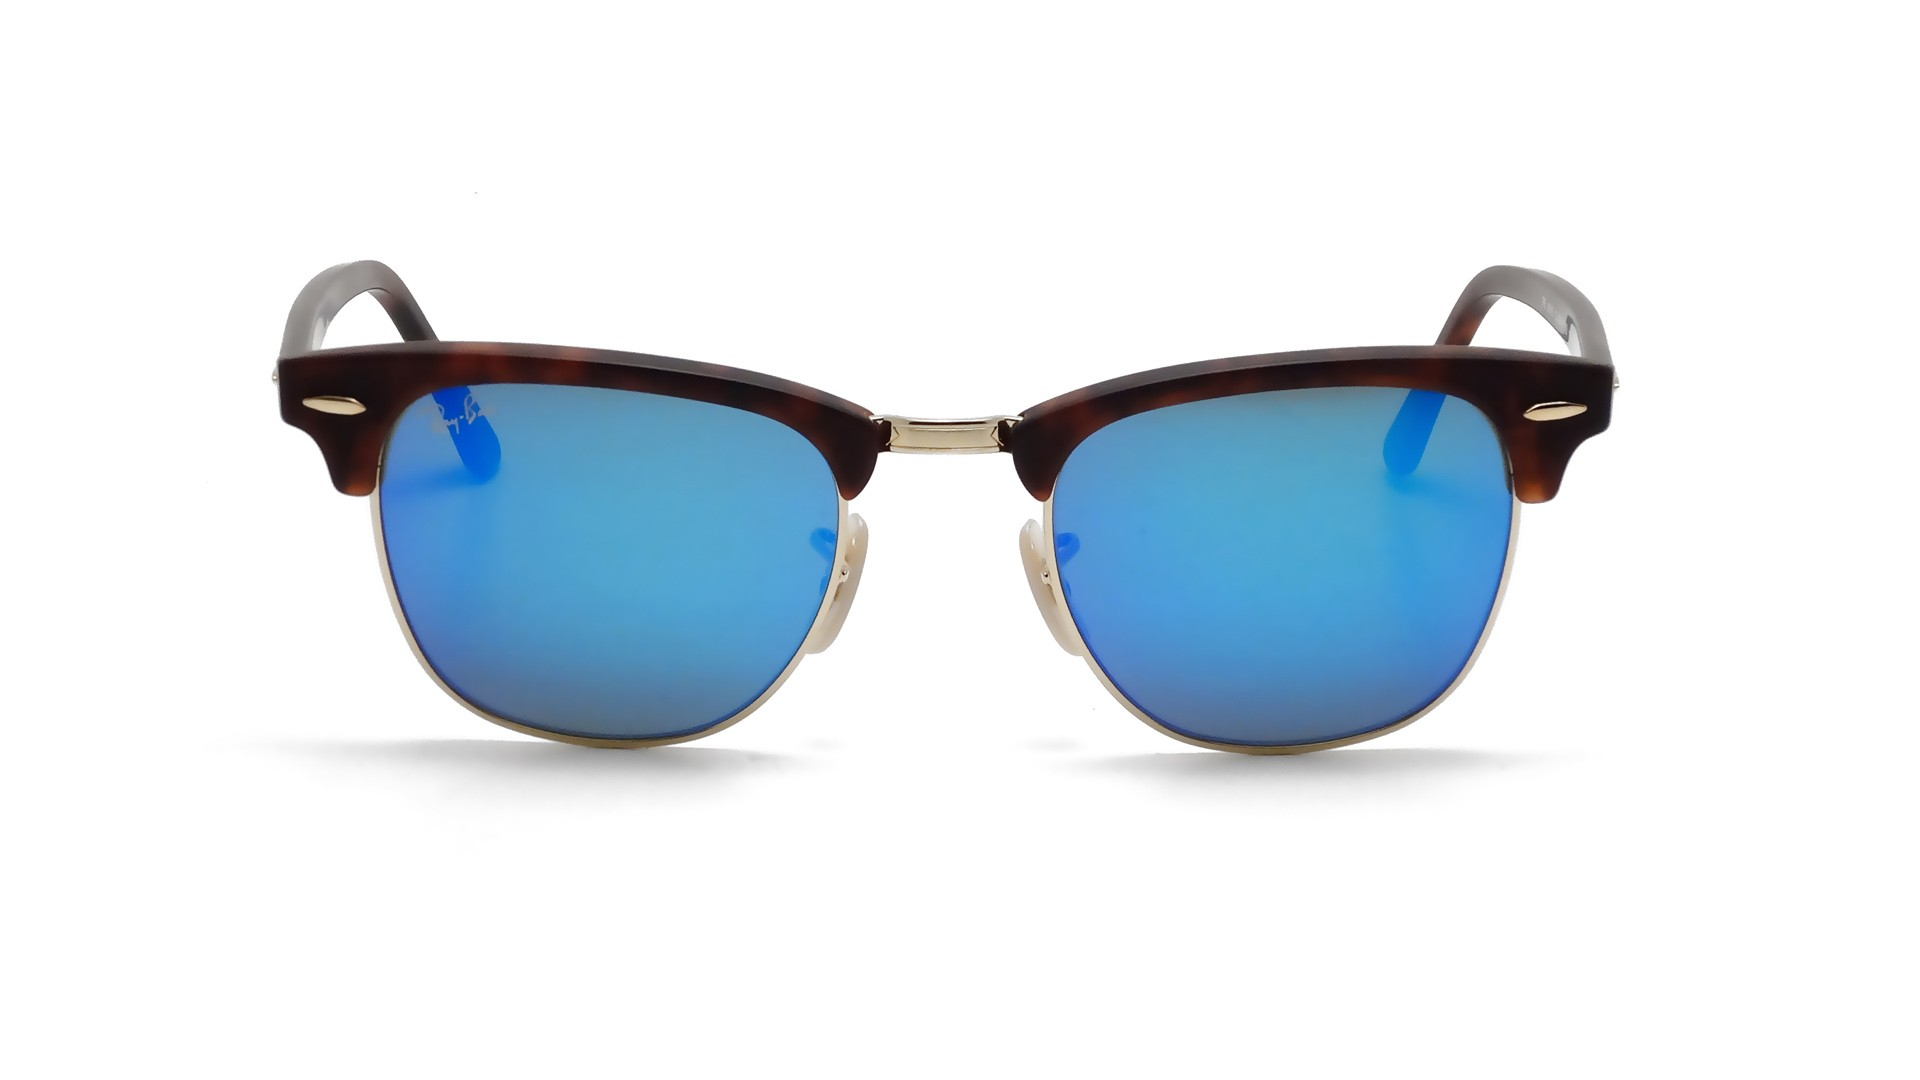 5f920d7bc0 Sunglasses Ray-Ban Clubmaster Tortoise Matte Flash Lenses RB3016 1145 17 49- 21 Small Mirror